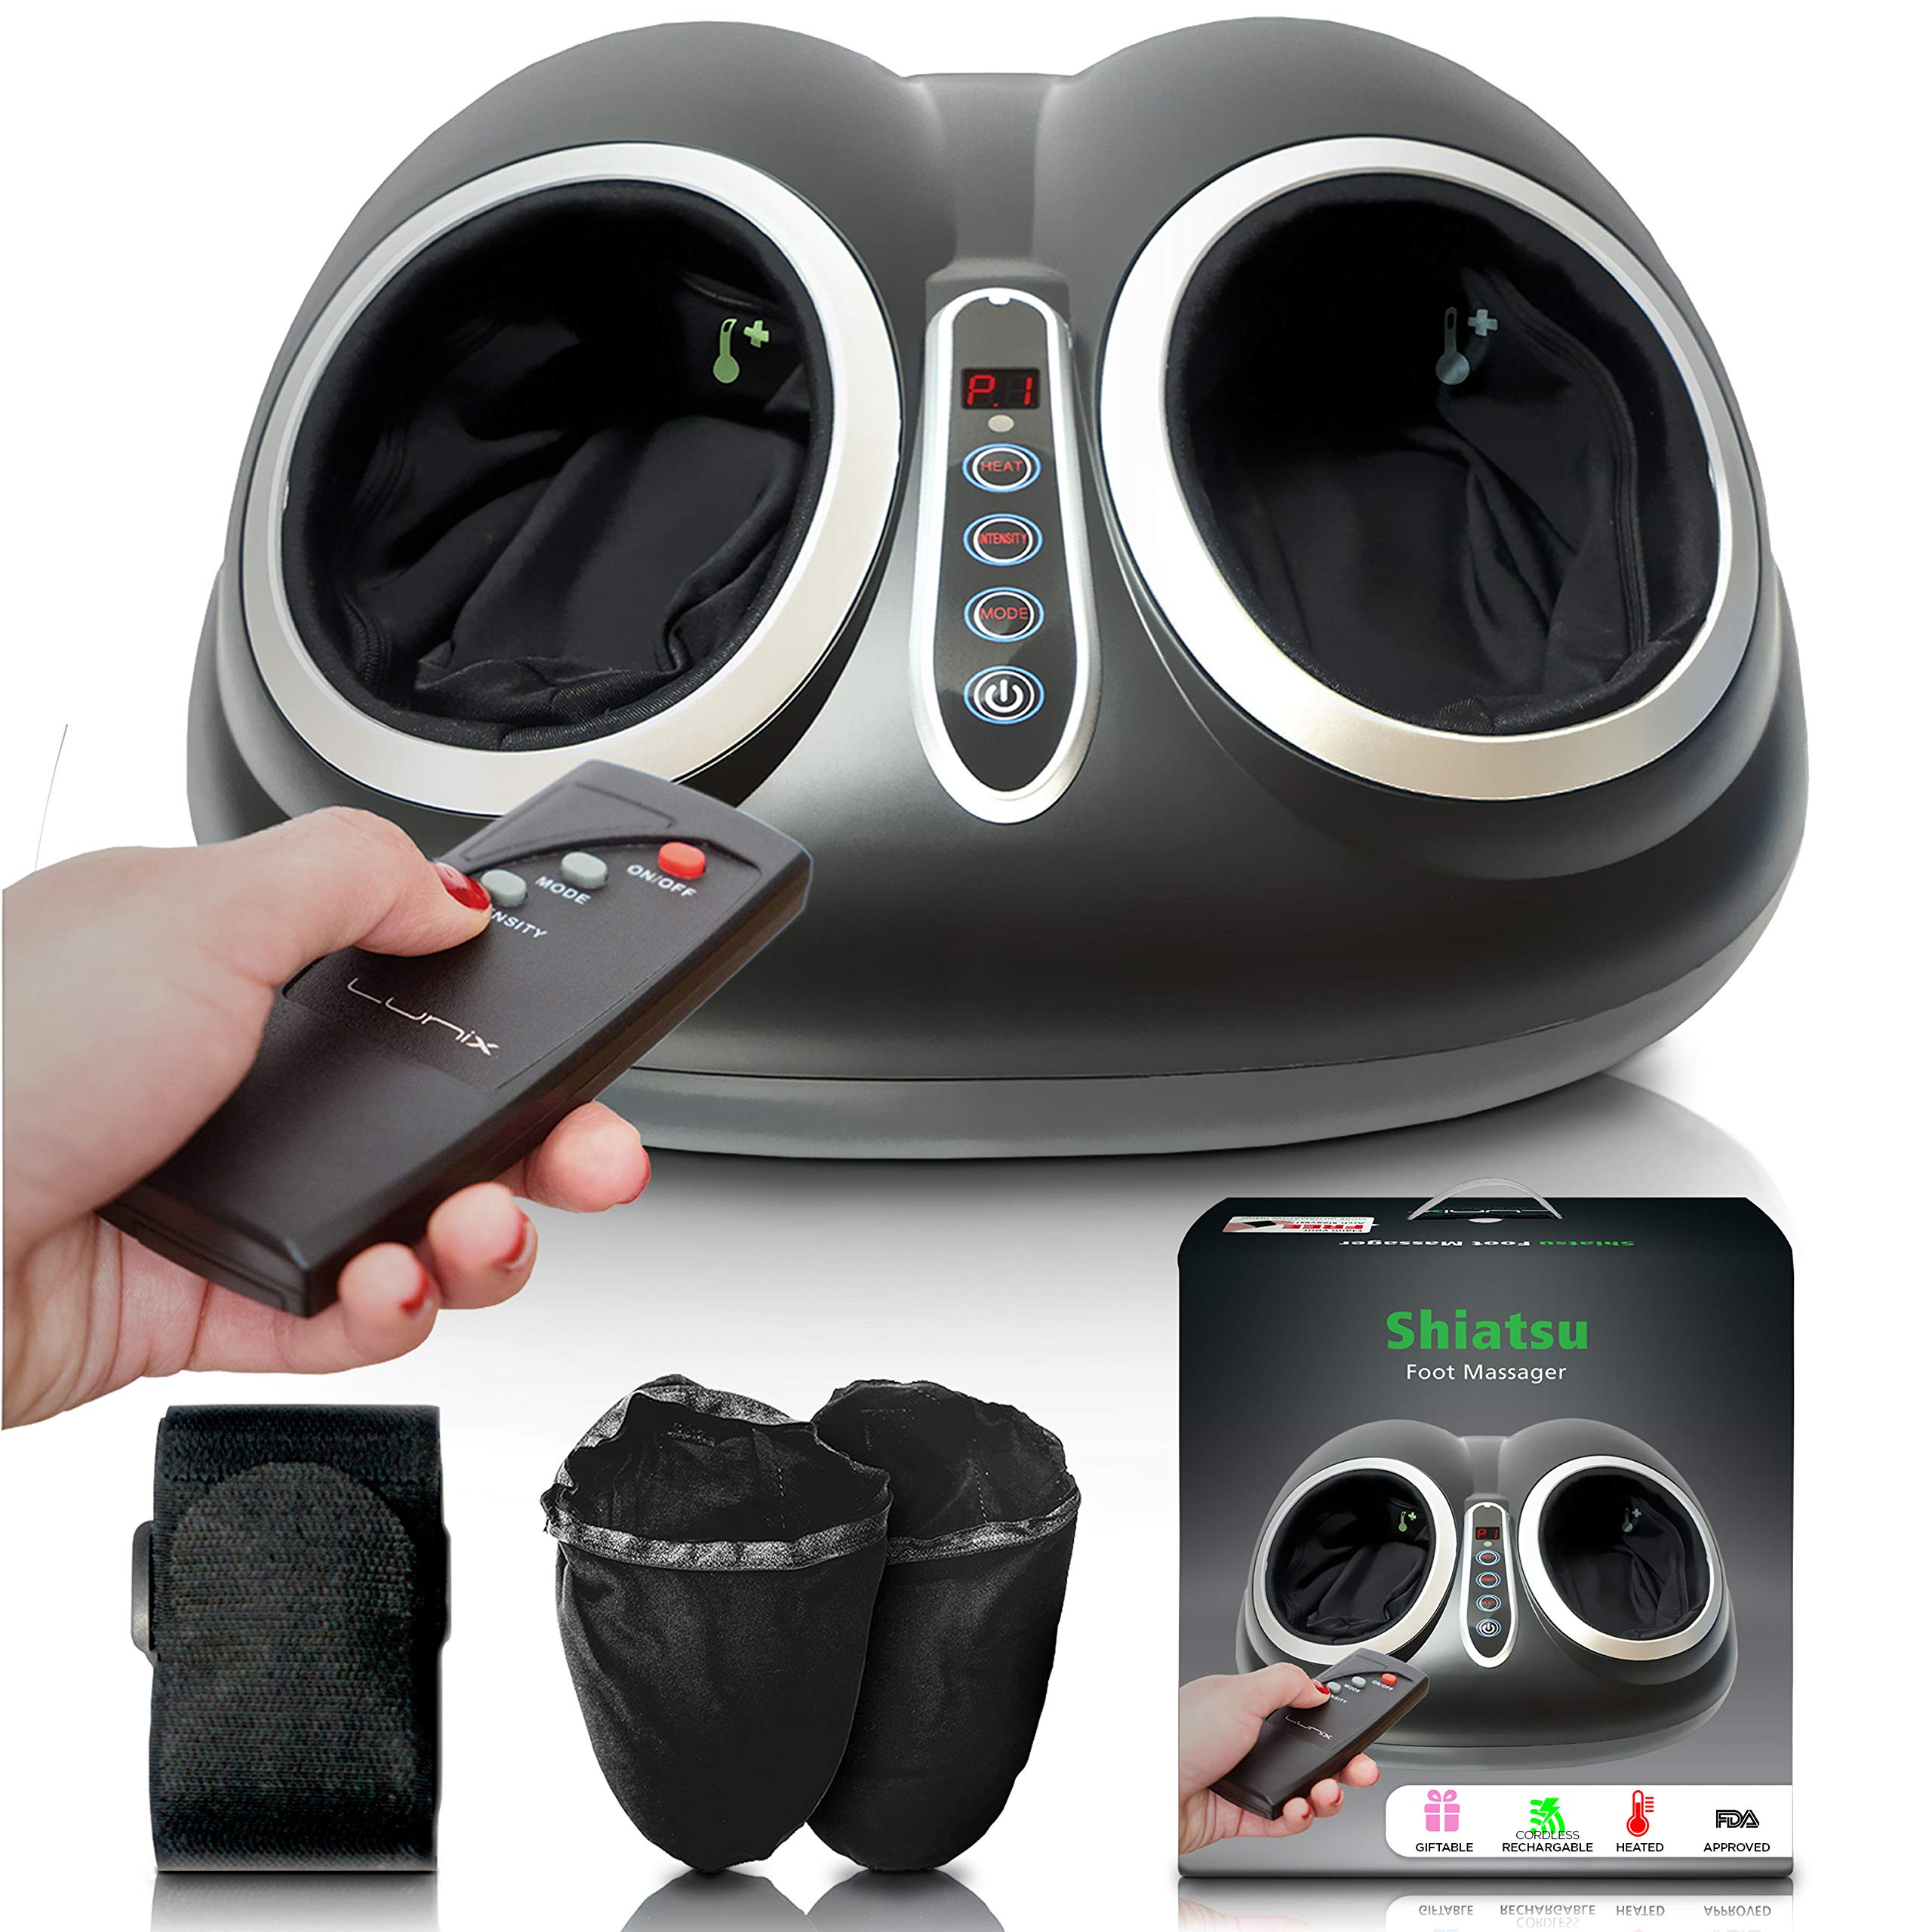 Upgraded Shiatsu Foot Massager Machine - Electric Feet Massage with Heat - Foot Massager Plantar Fasciitis, Neuropathy and Diabetics - Heated Roller Foot Spa - Perfect Pain Relief Massager Lunix